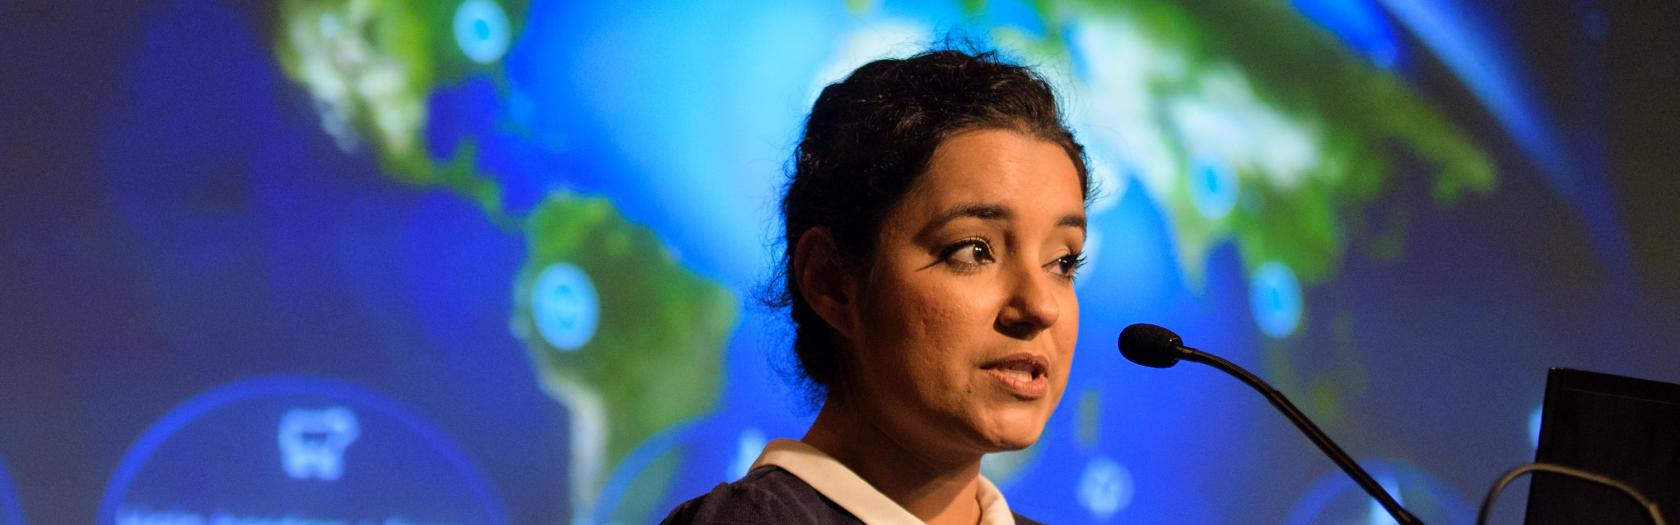 Africa Flores, Land Cover and Land Use Change Theme Lead for SERVIR, speaks during the 2018 Annual Earth Science Applications Showcase